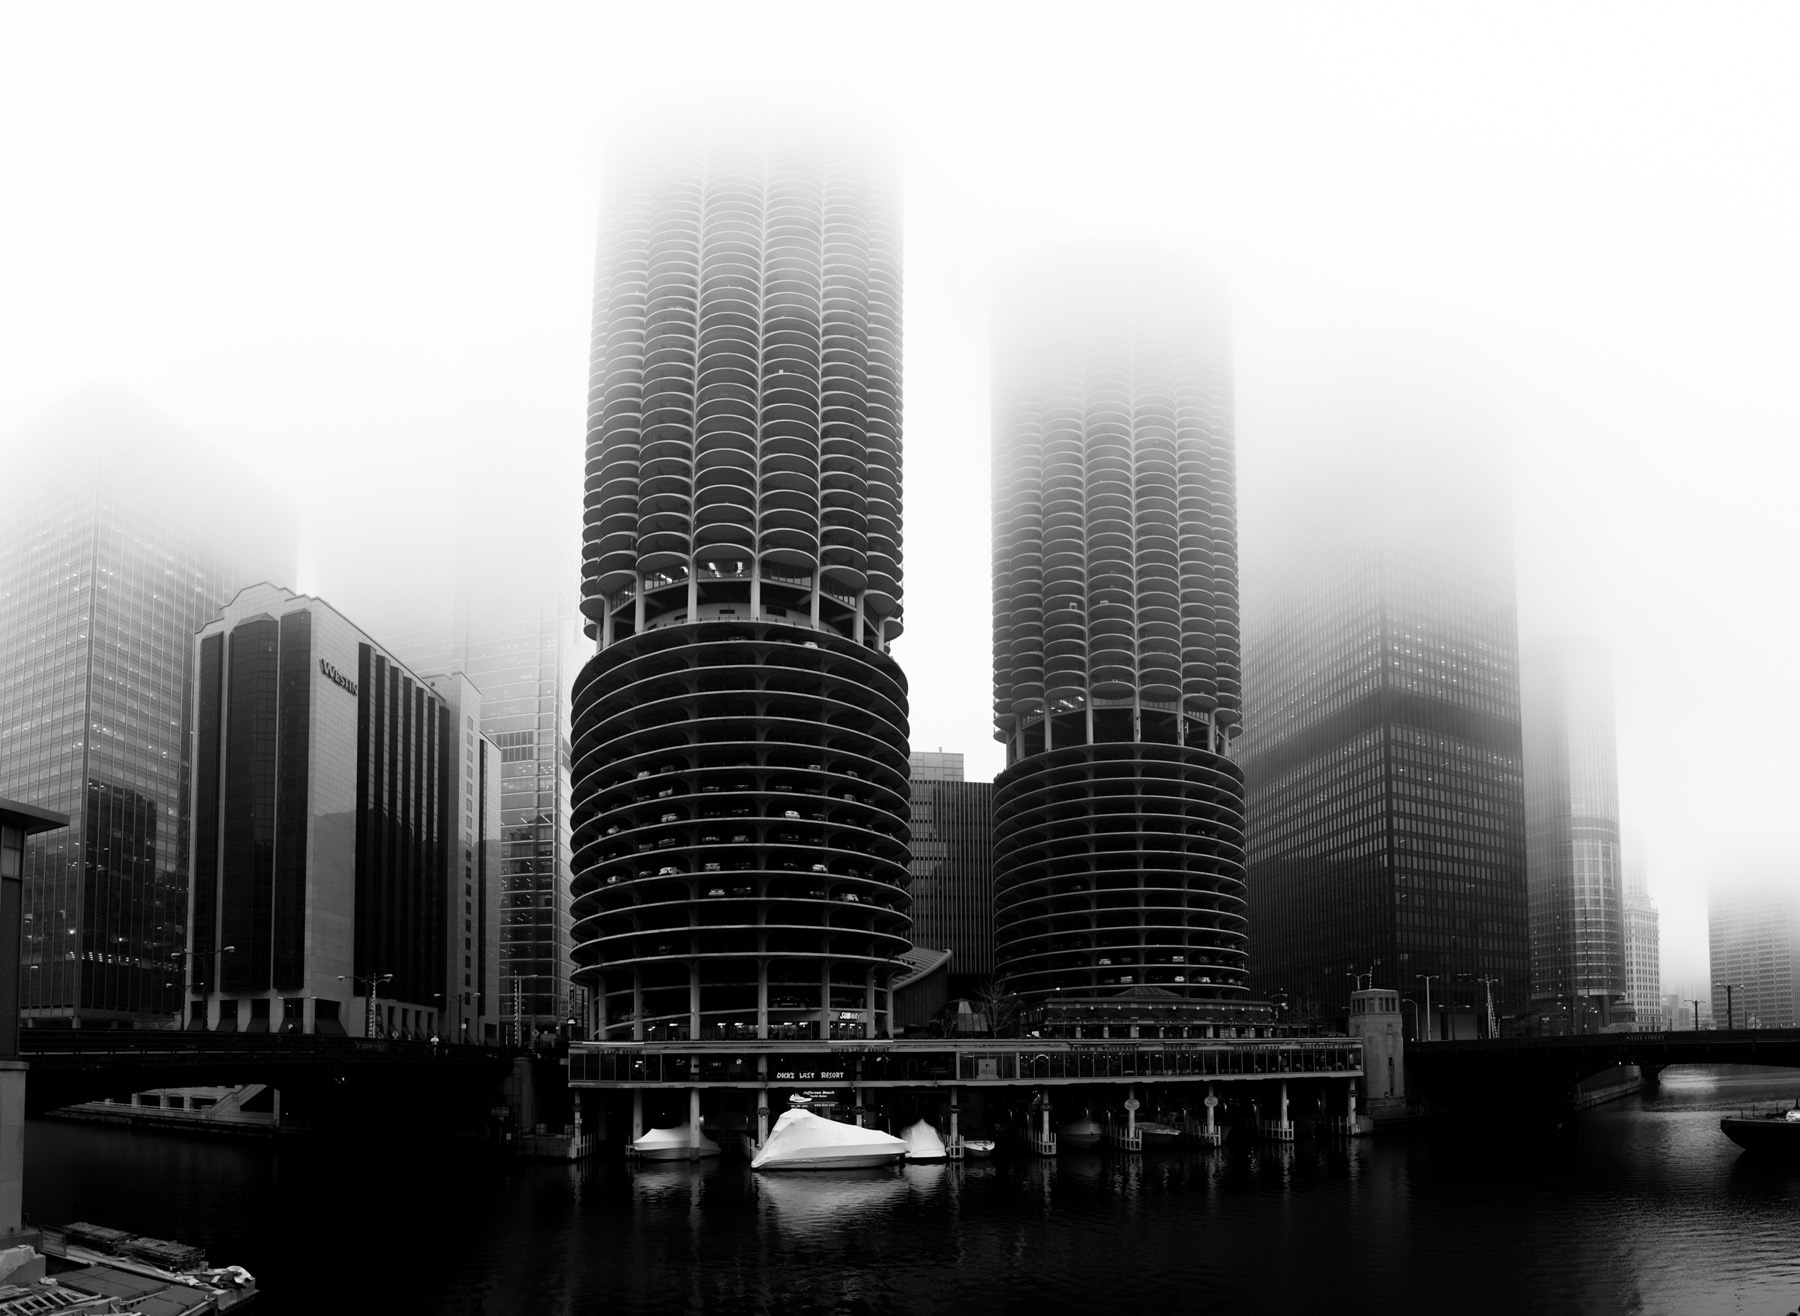 a black and white shot of the two towers of Marina city enveloped in fog.